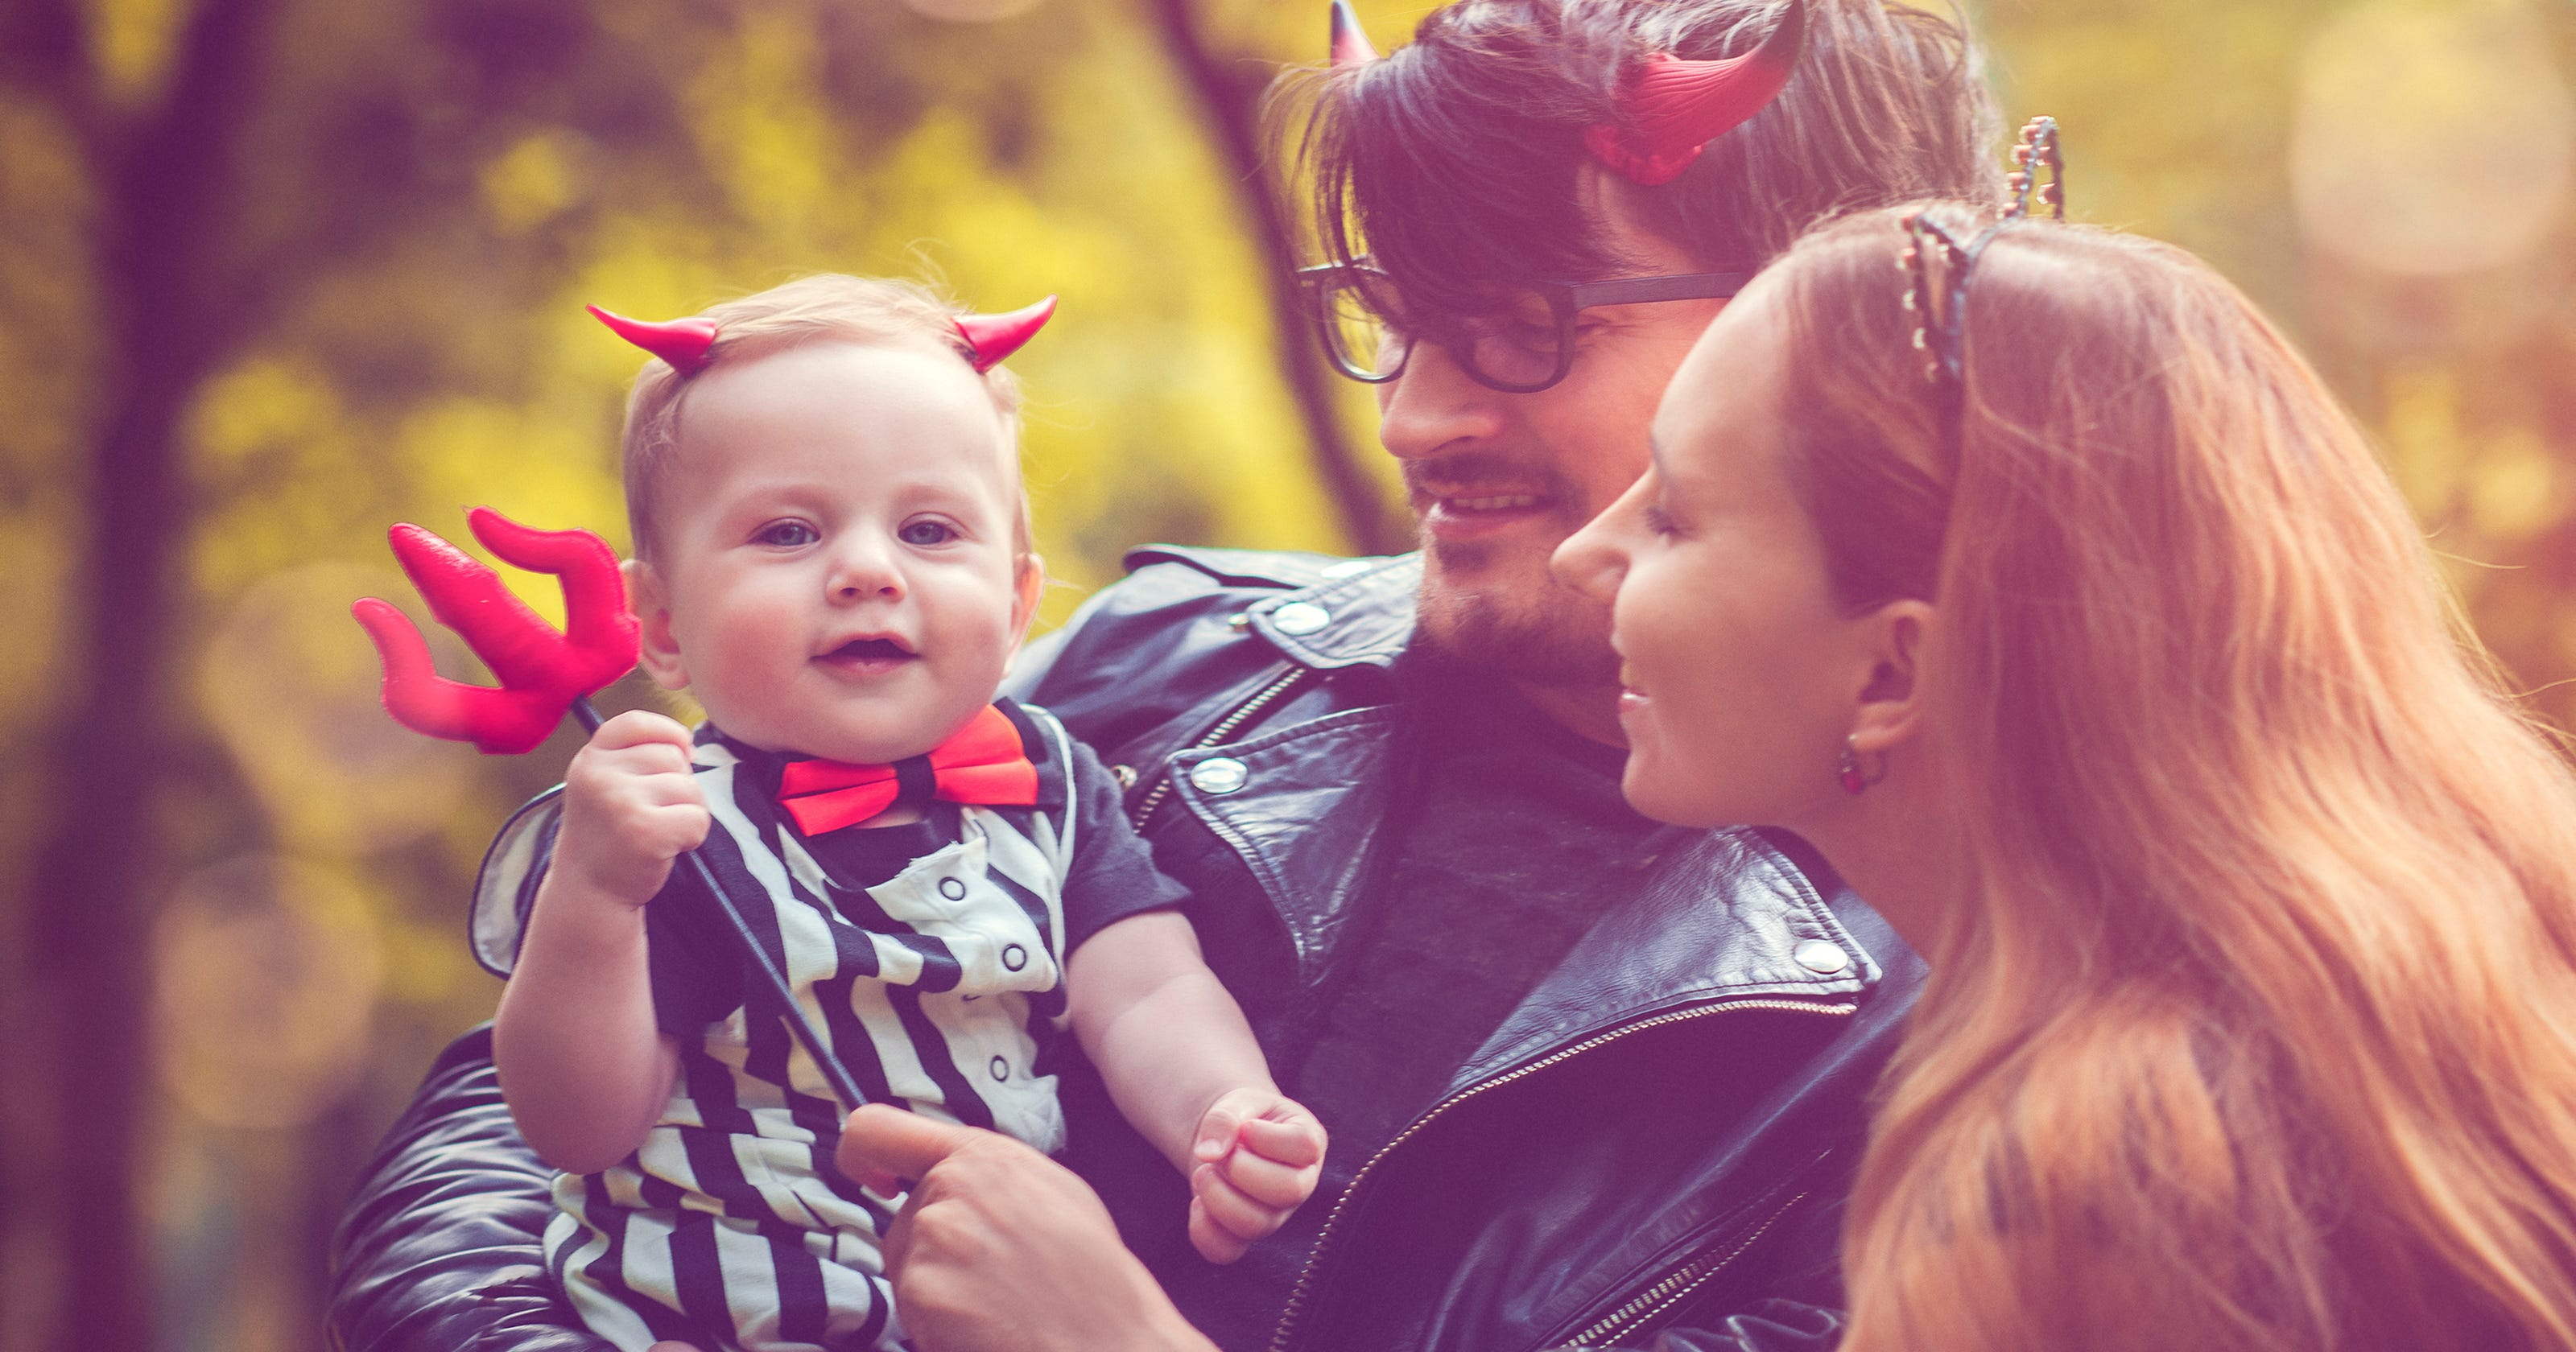 Mom And Baby Boy Halloween Costume Ideas.15 Ridiculously Cute Family Costume Ideas For Halloween